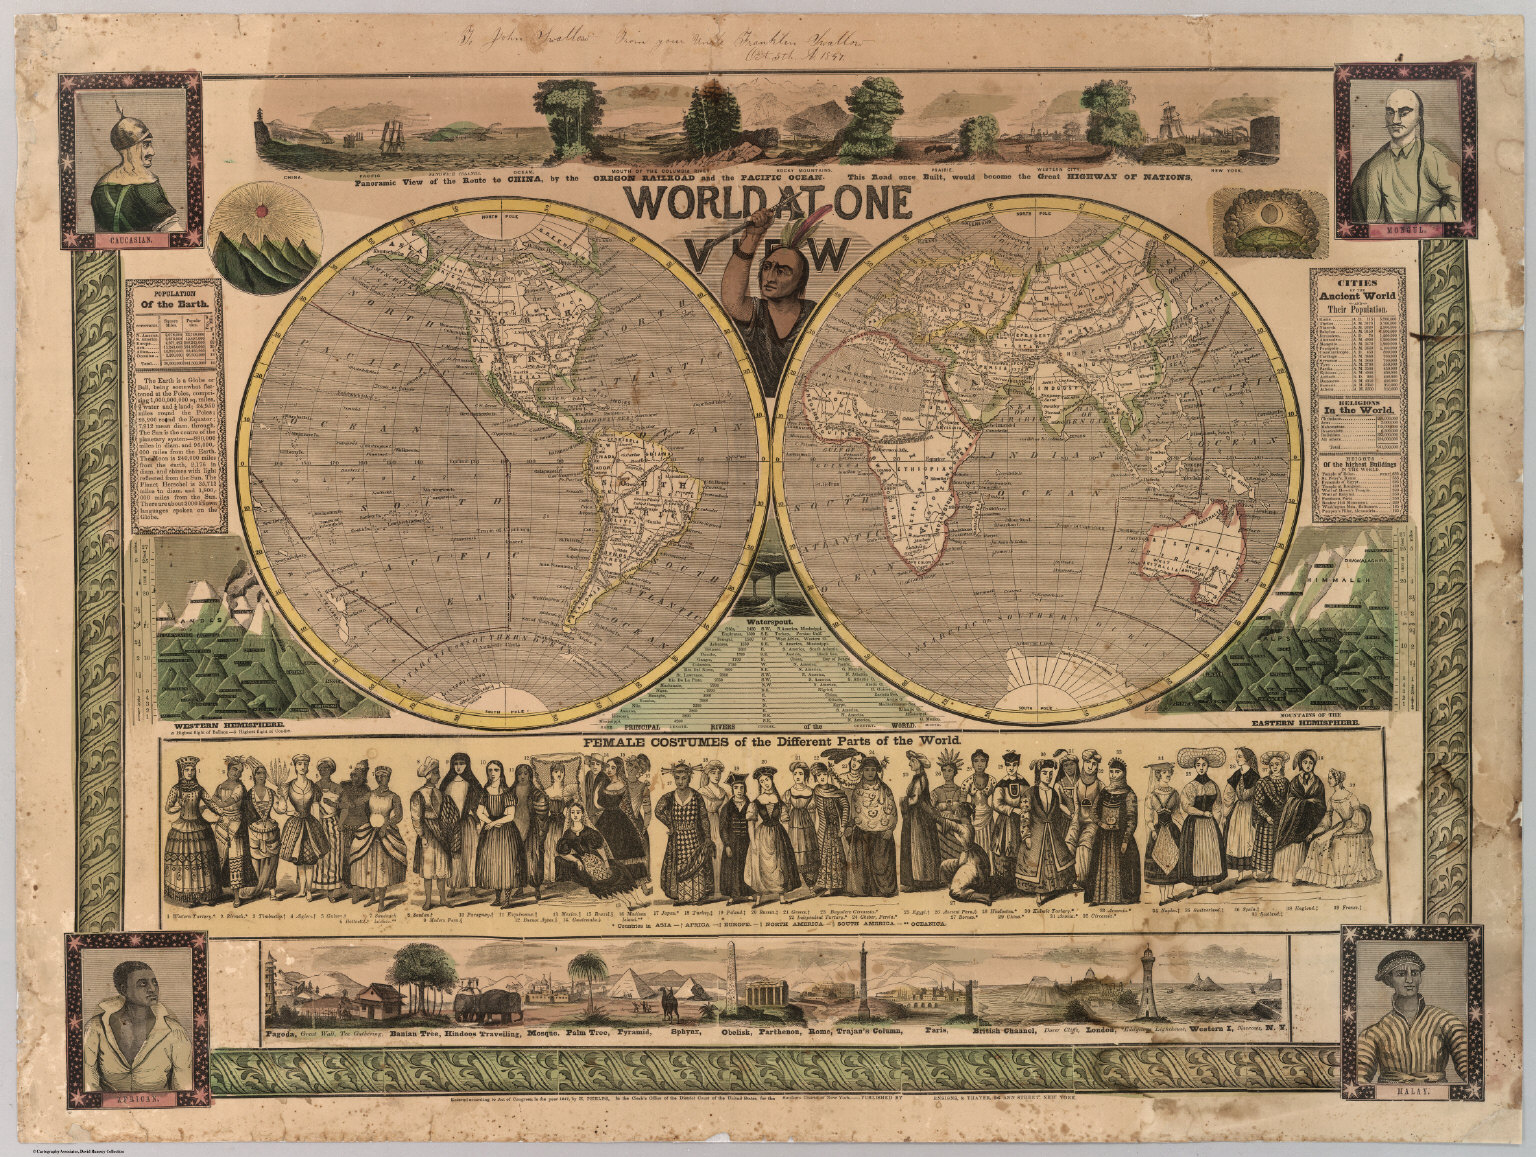 View Map Of The World.World At One View 1847 David Rumsey Historical Map Collection